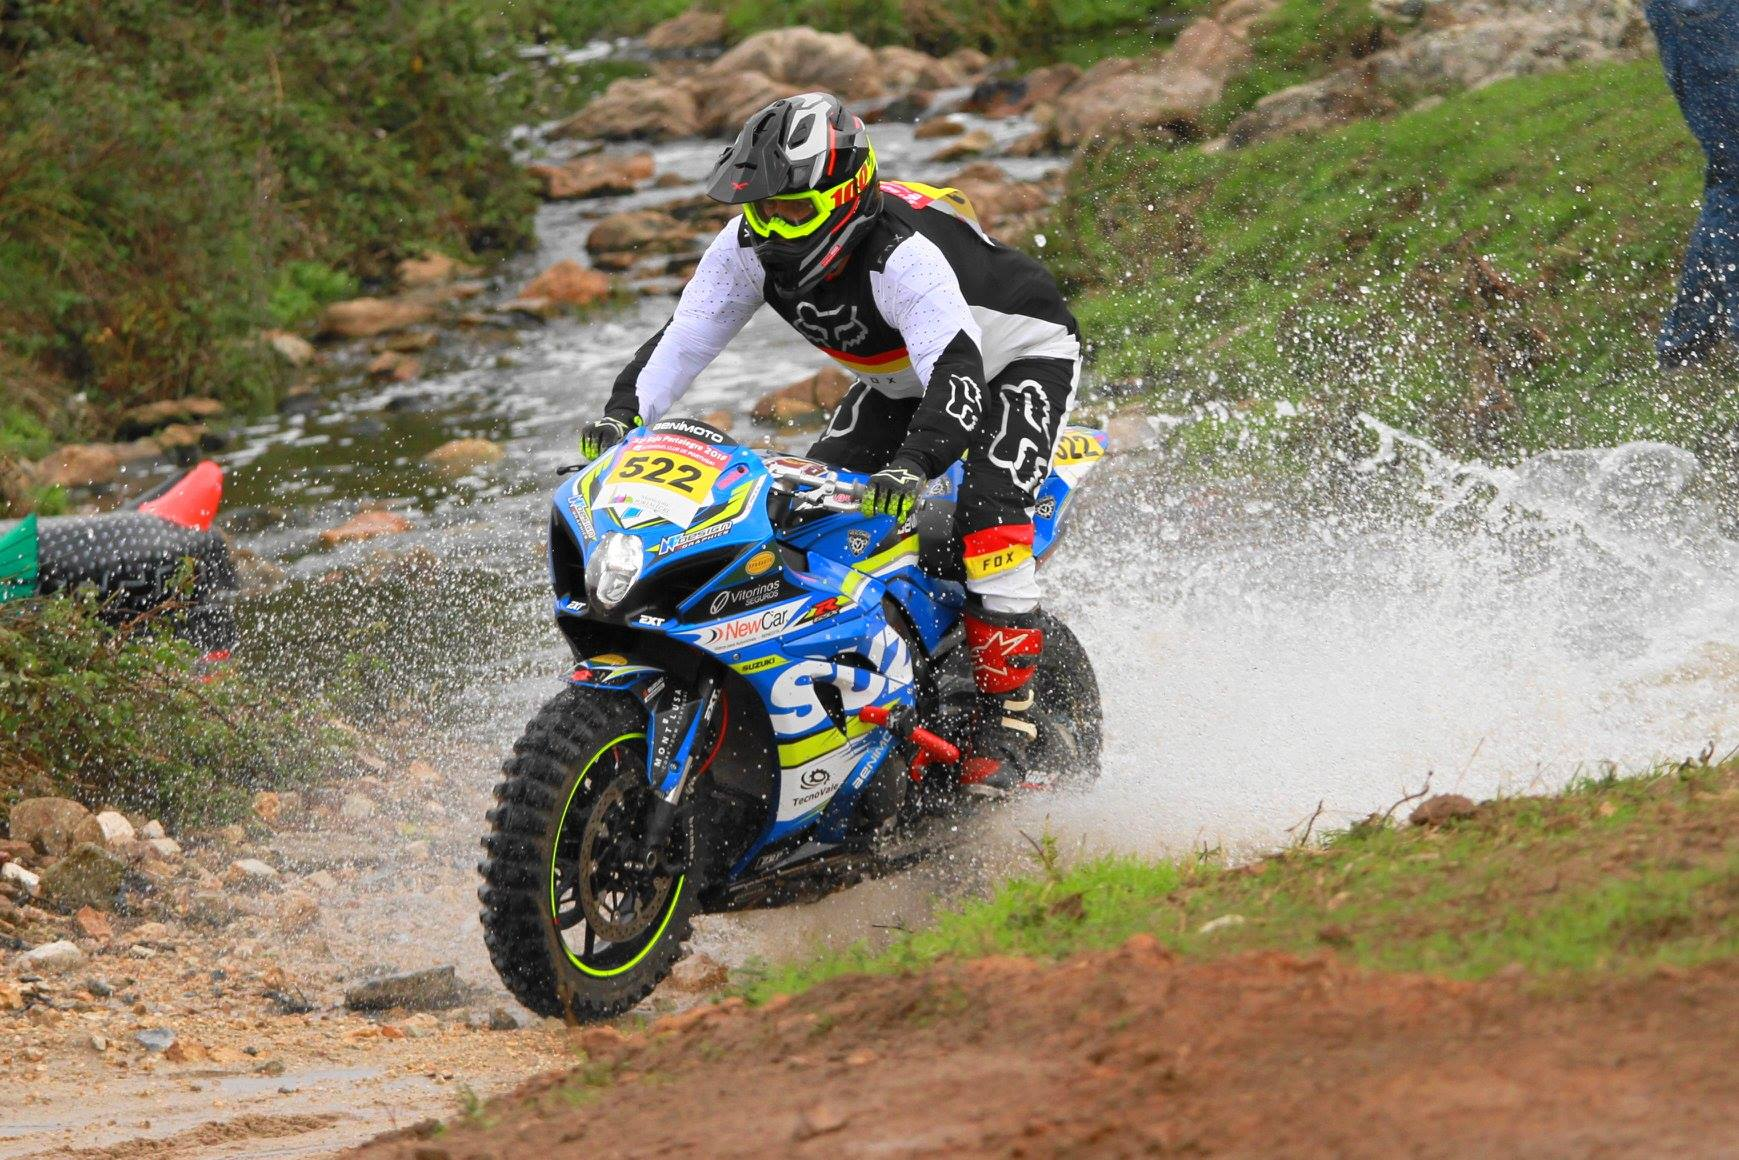 Suzuki GSX R1000 went off road racing and it did a good job!